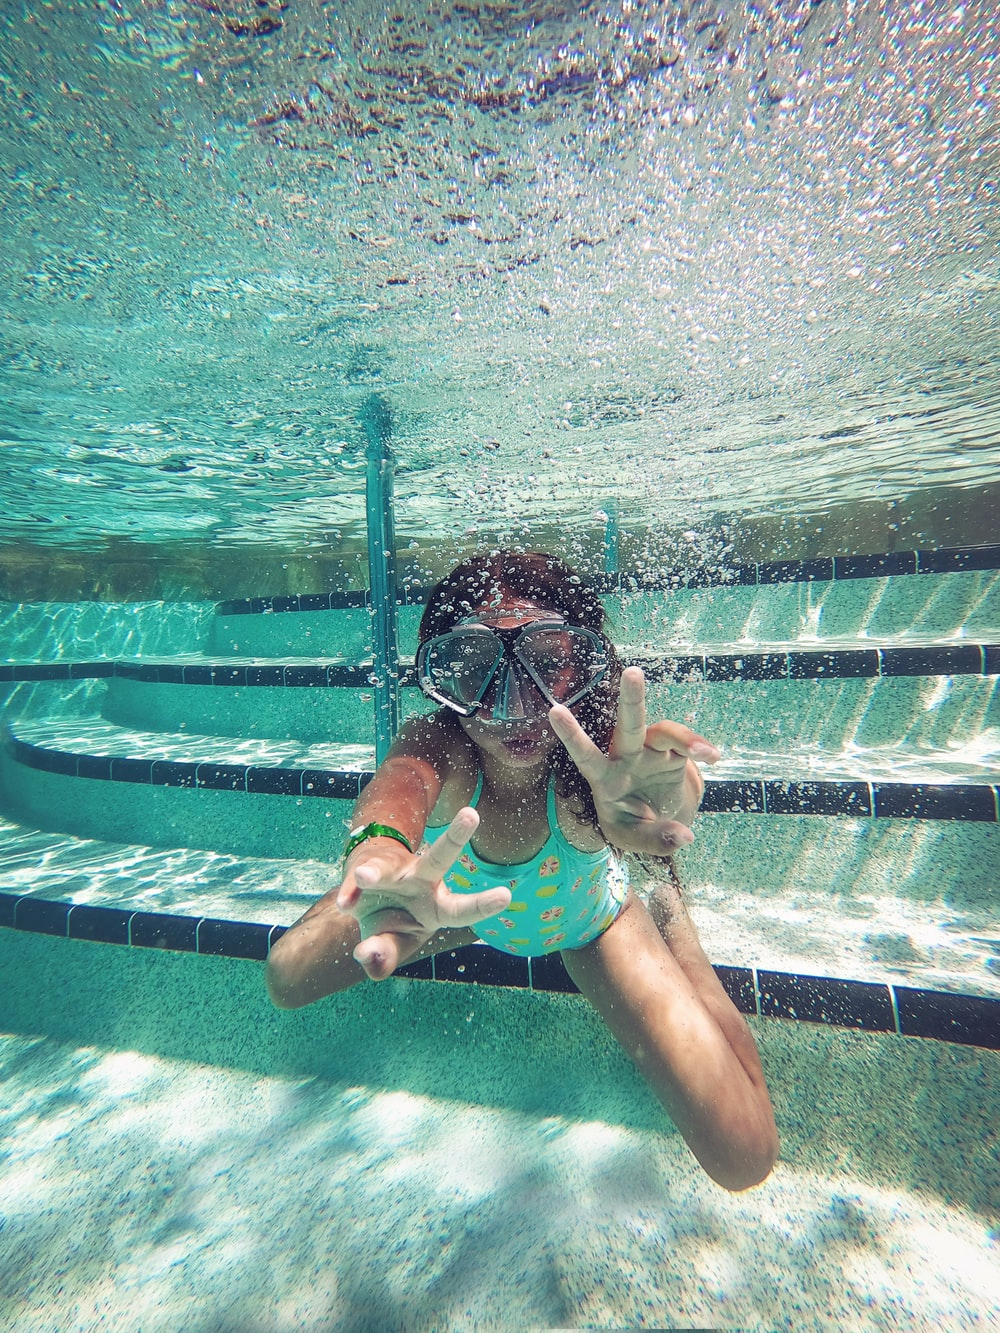 person swimming under water during daytime